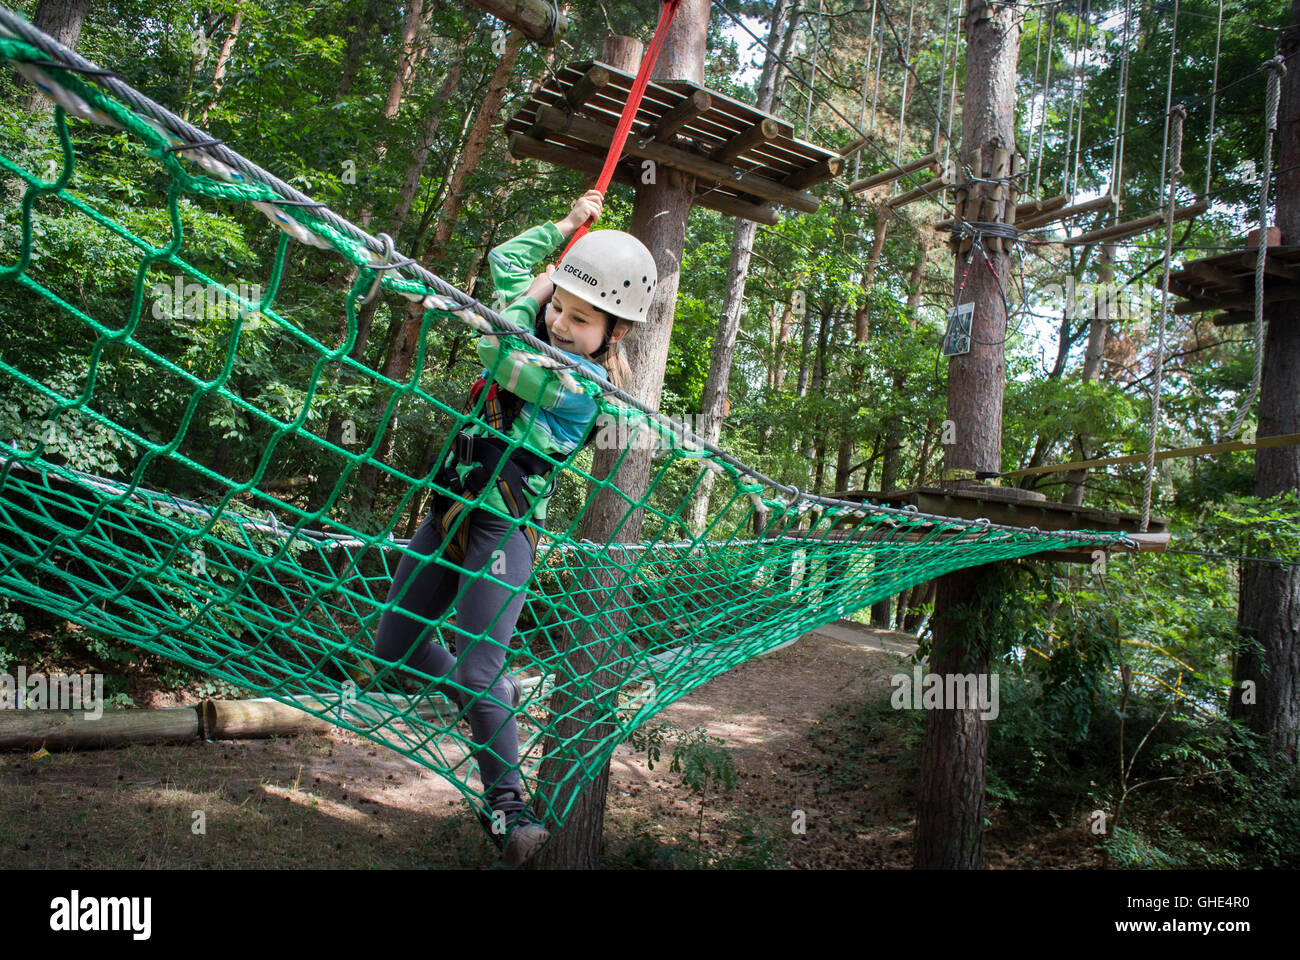 Young girl at a treetop adventure park in Germany. - Stock Image